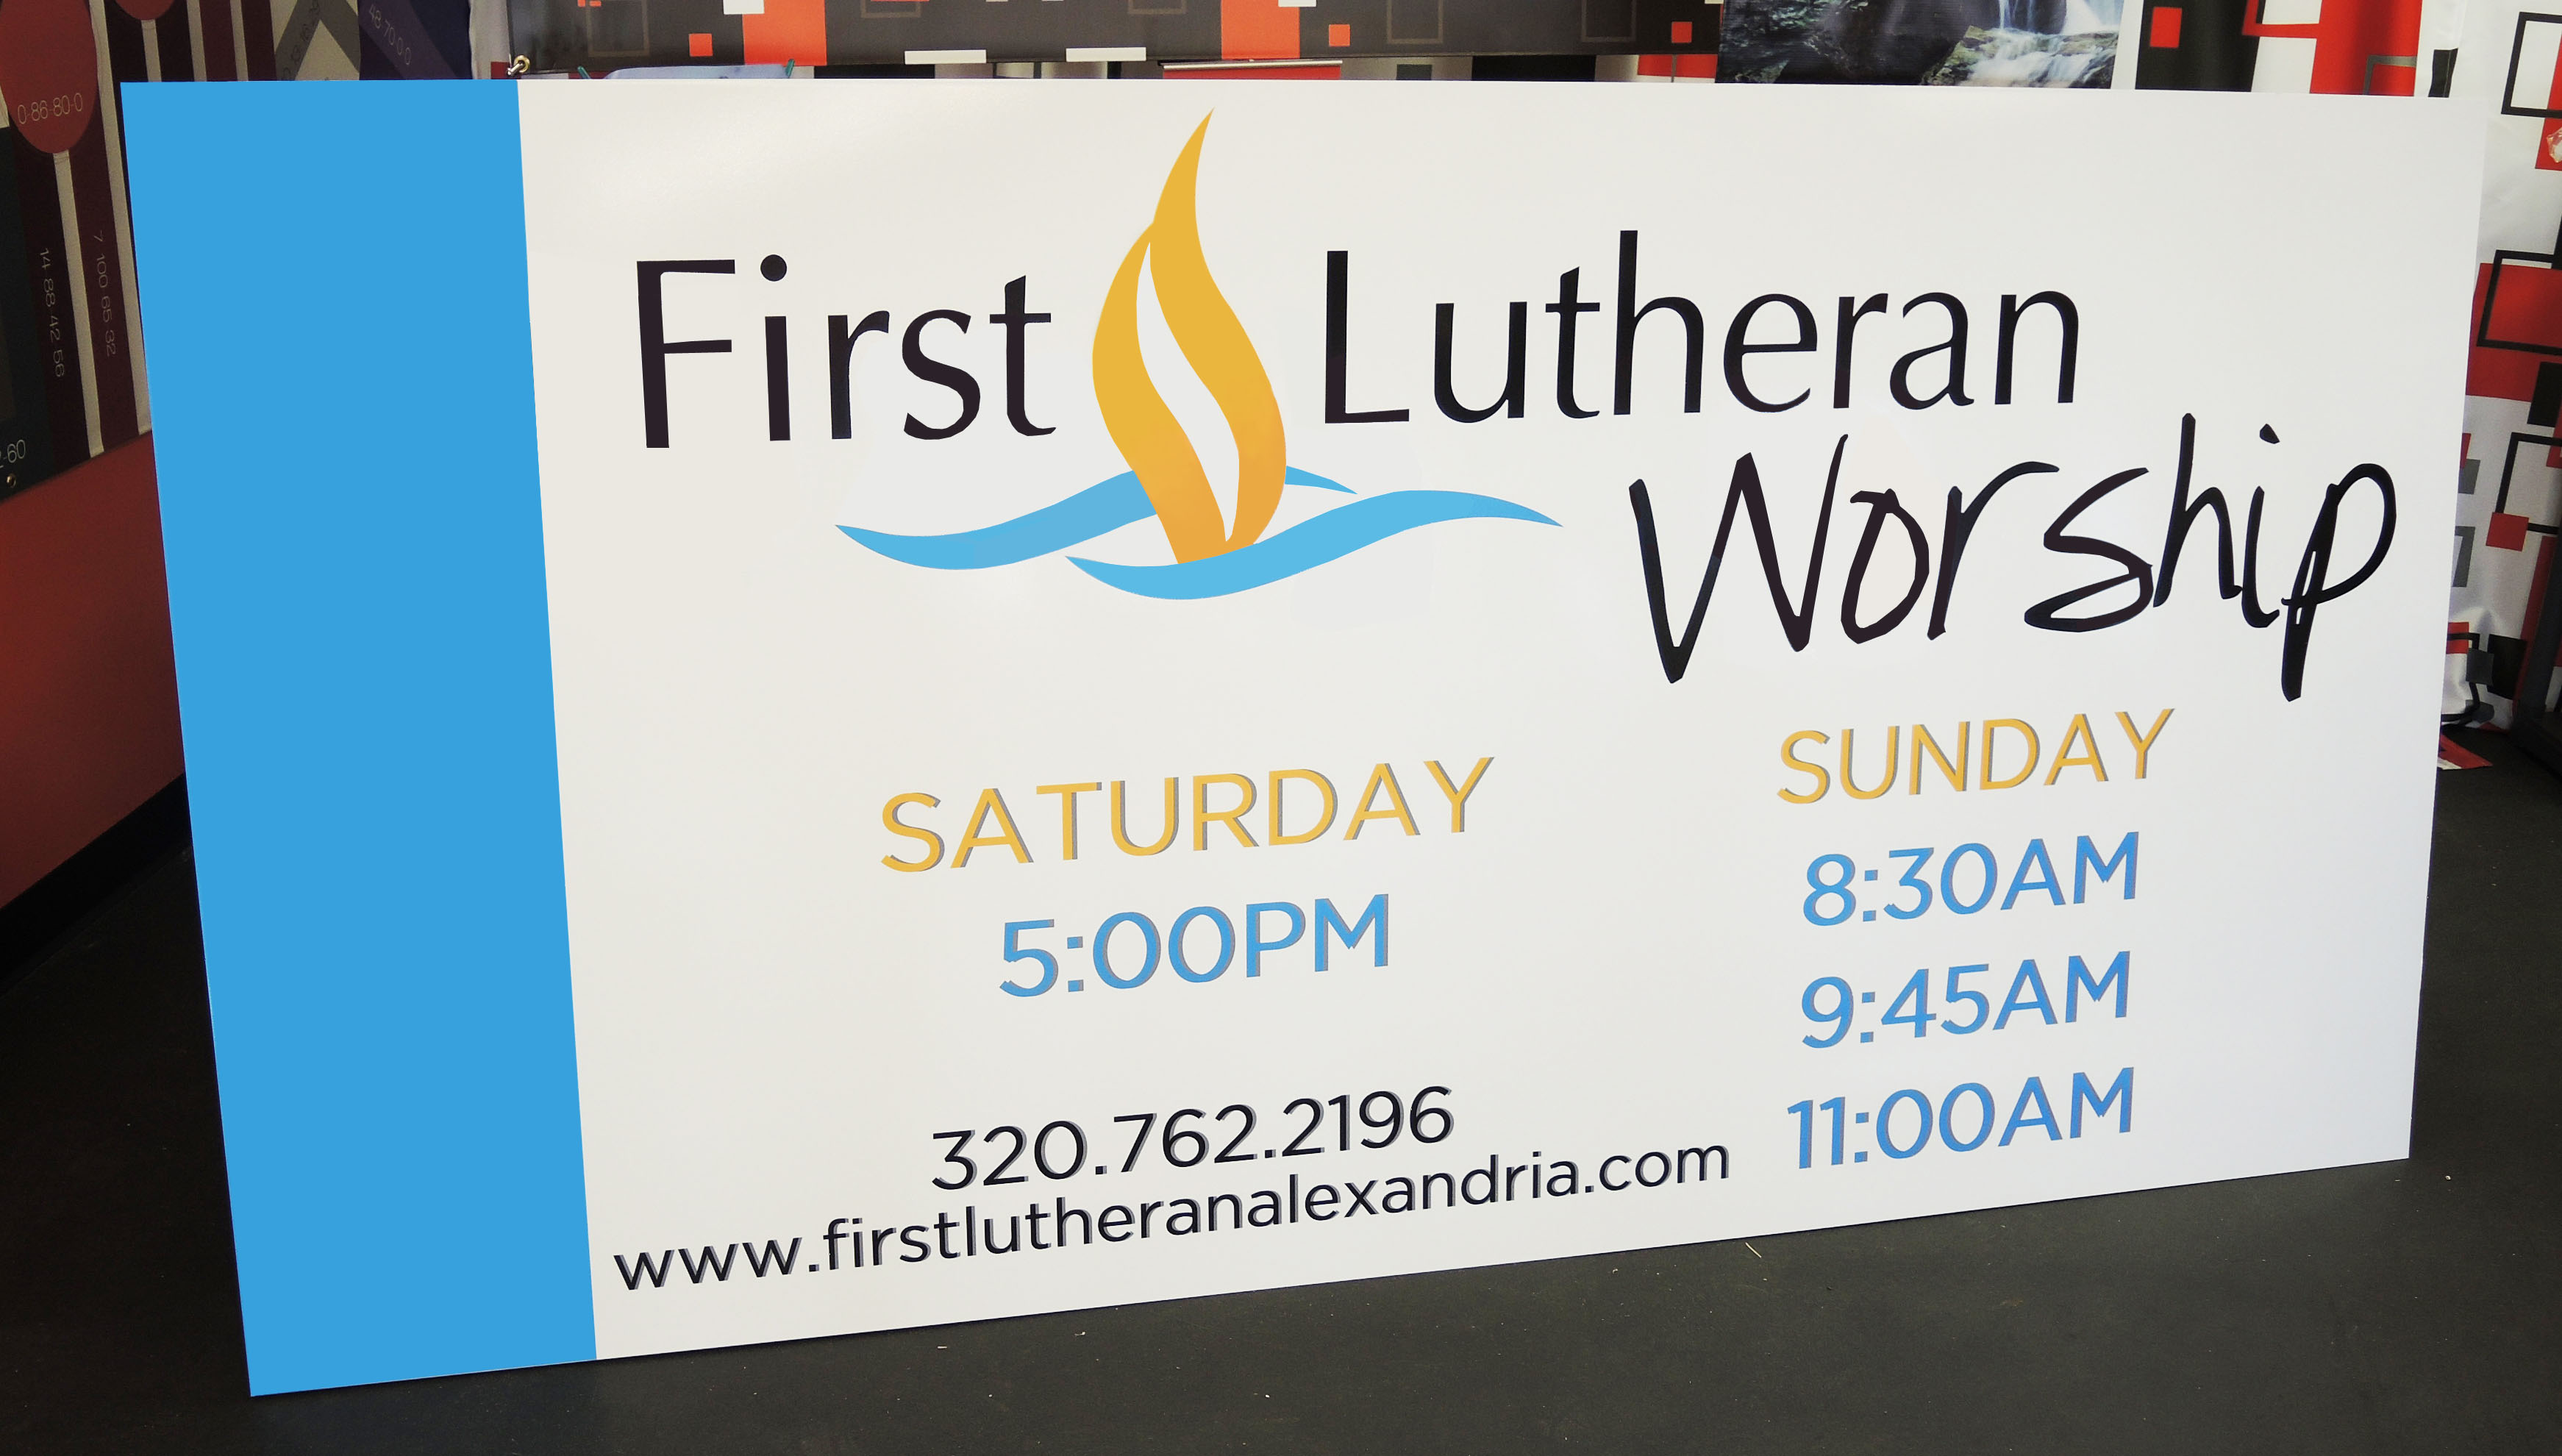 First Lutheran Worship Polymetal Sign | Signmax.com